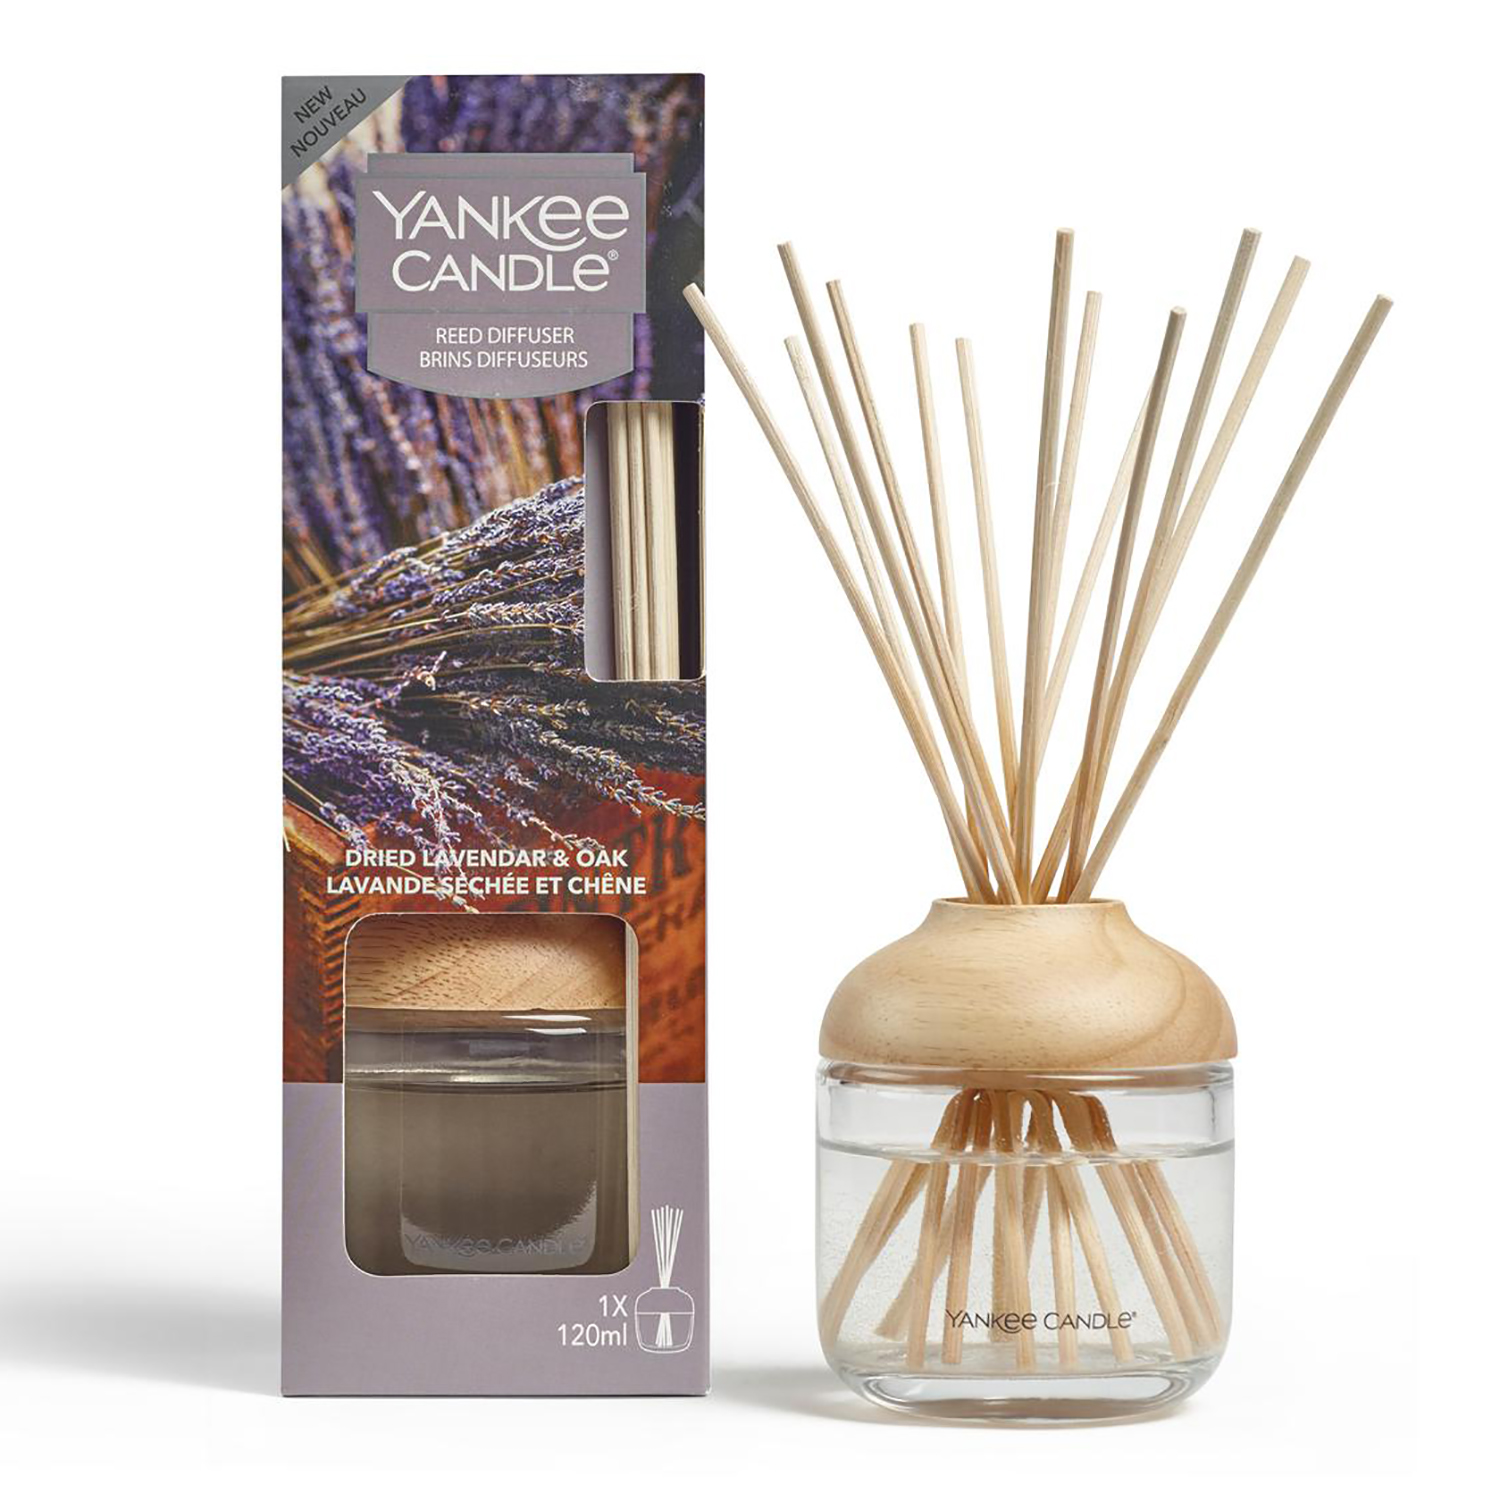 Yankee Dried Lavender & Oak Reed Diffuser